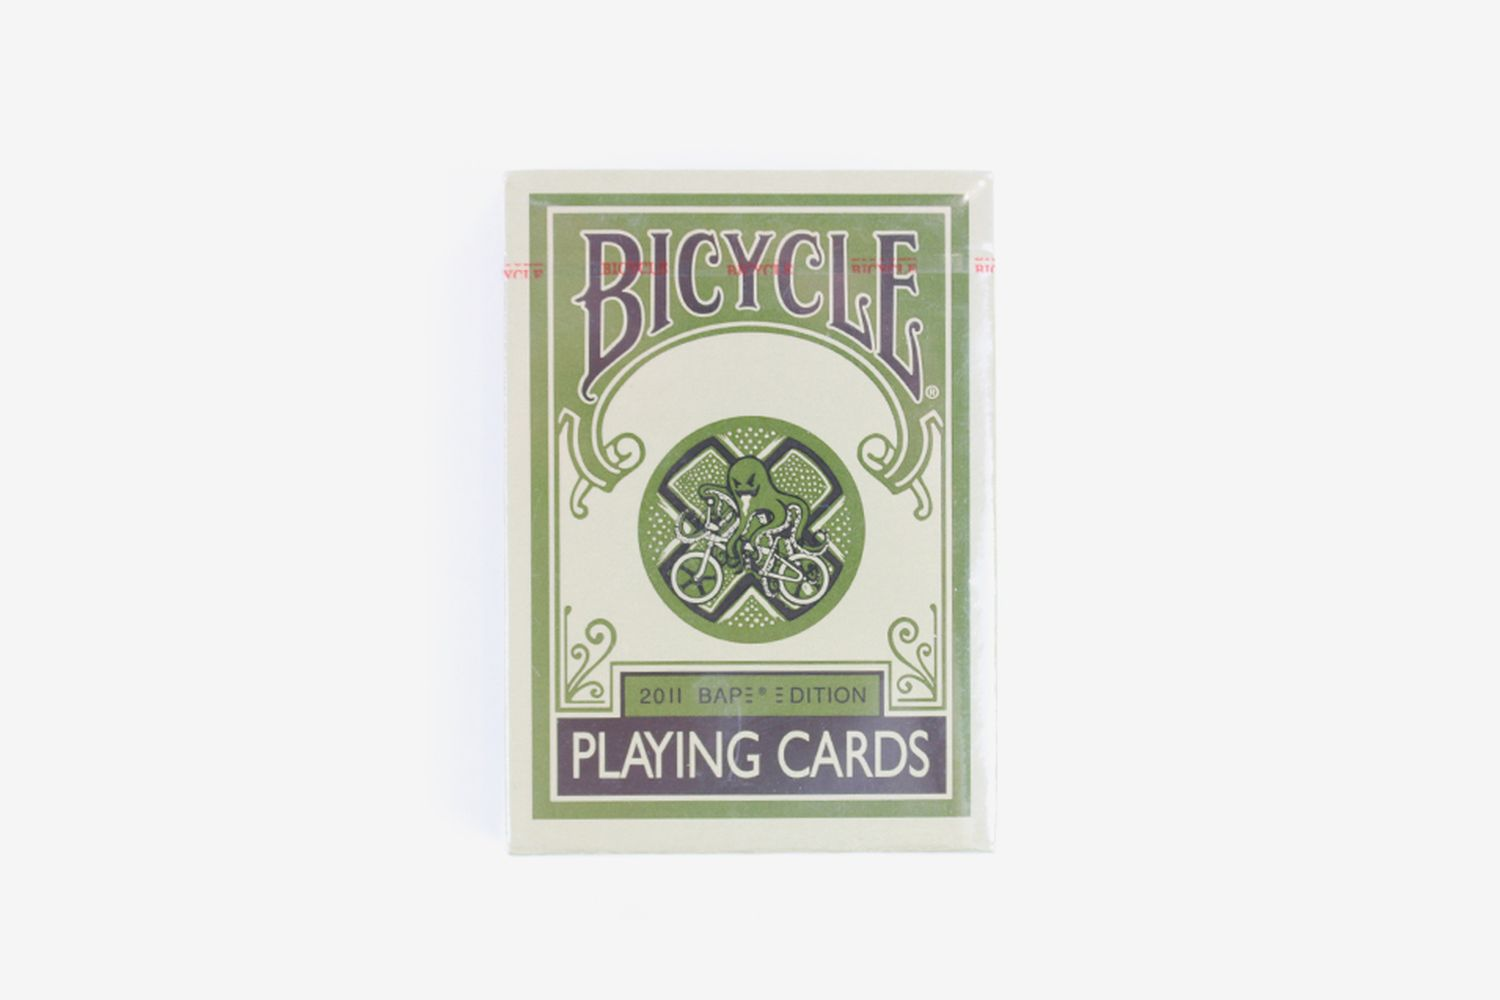 Bicycle Plying Cards